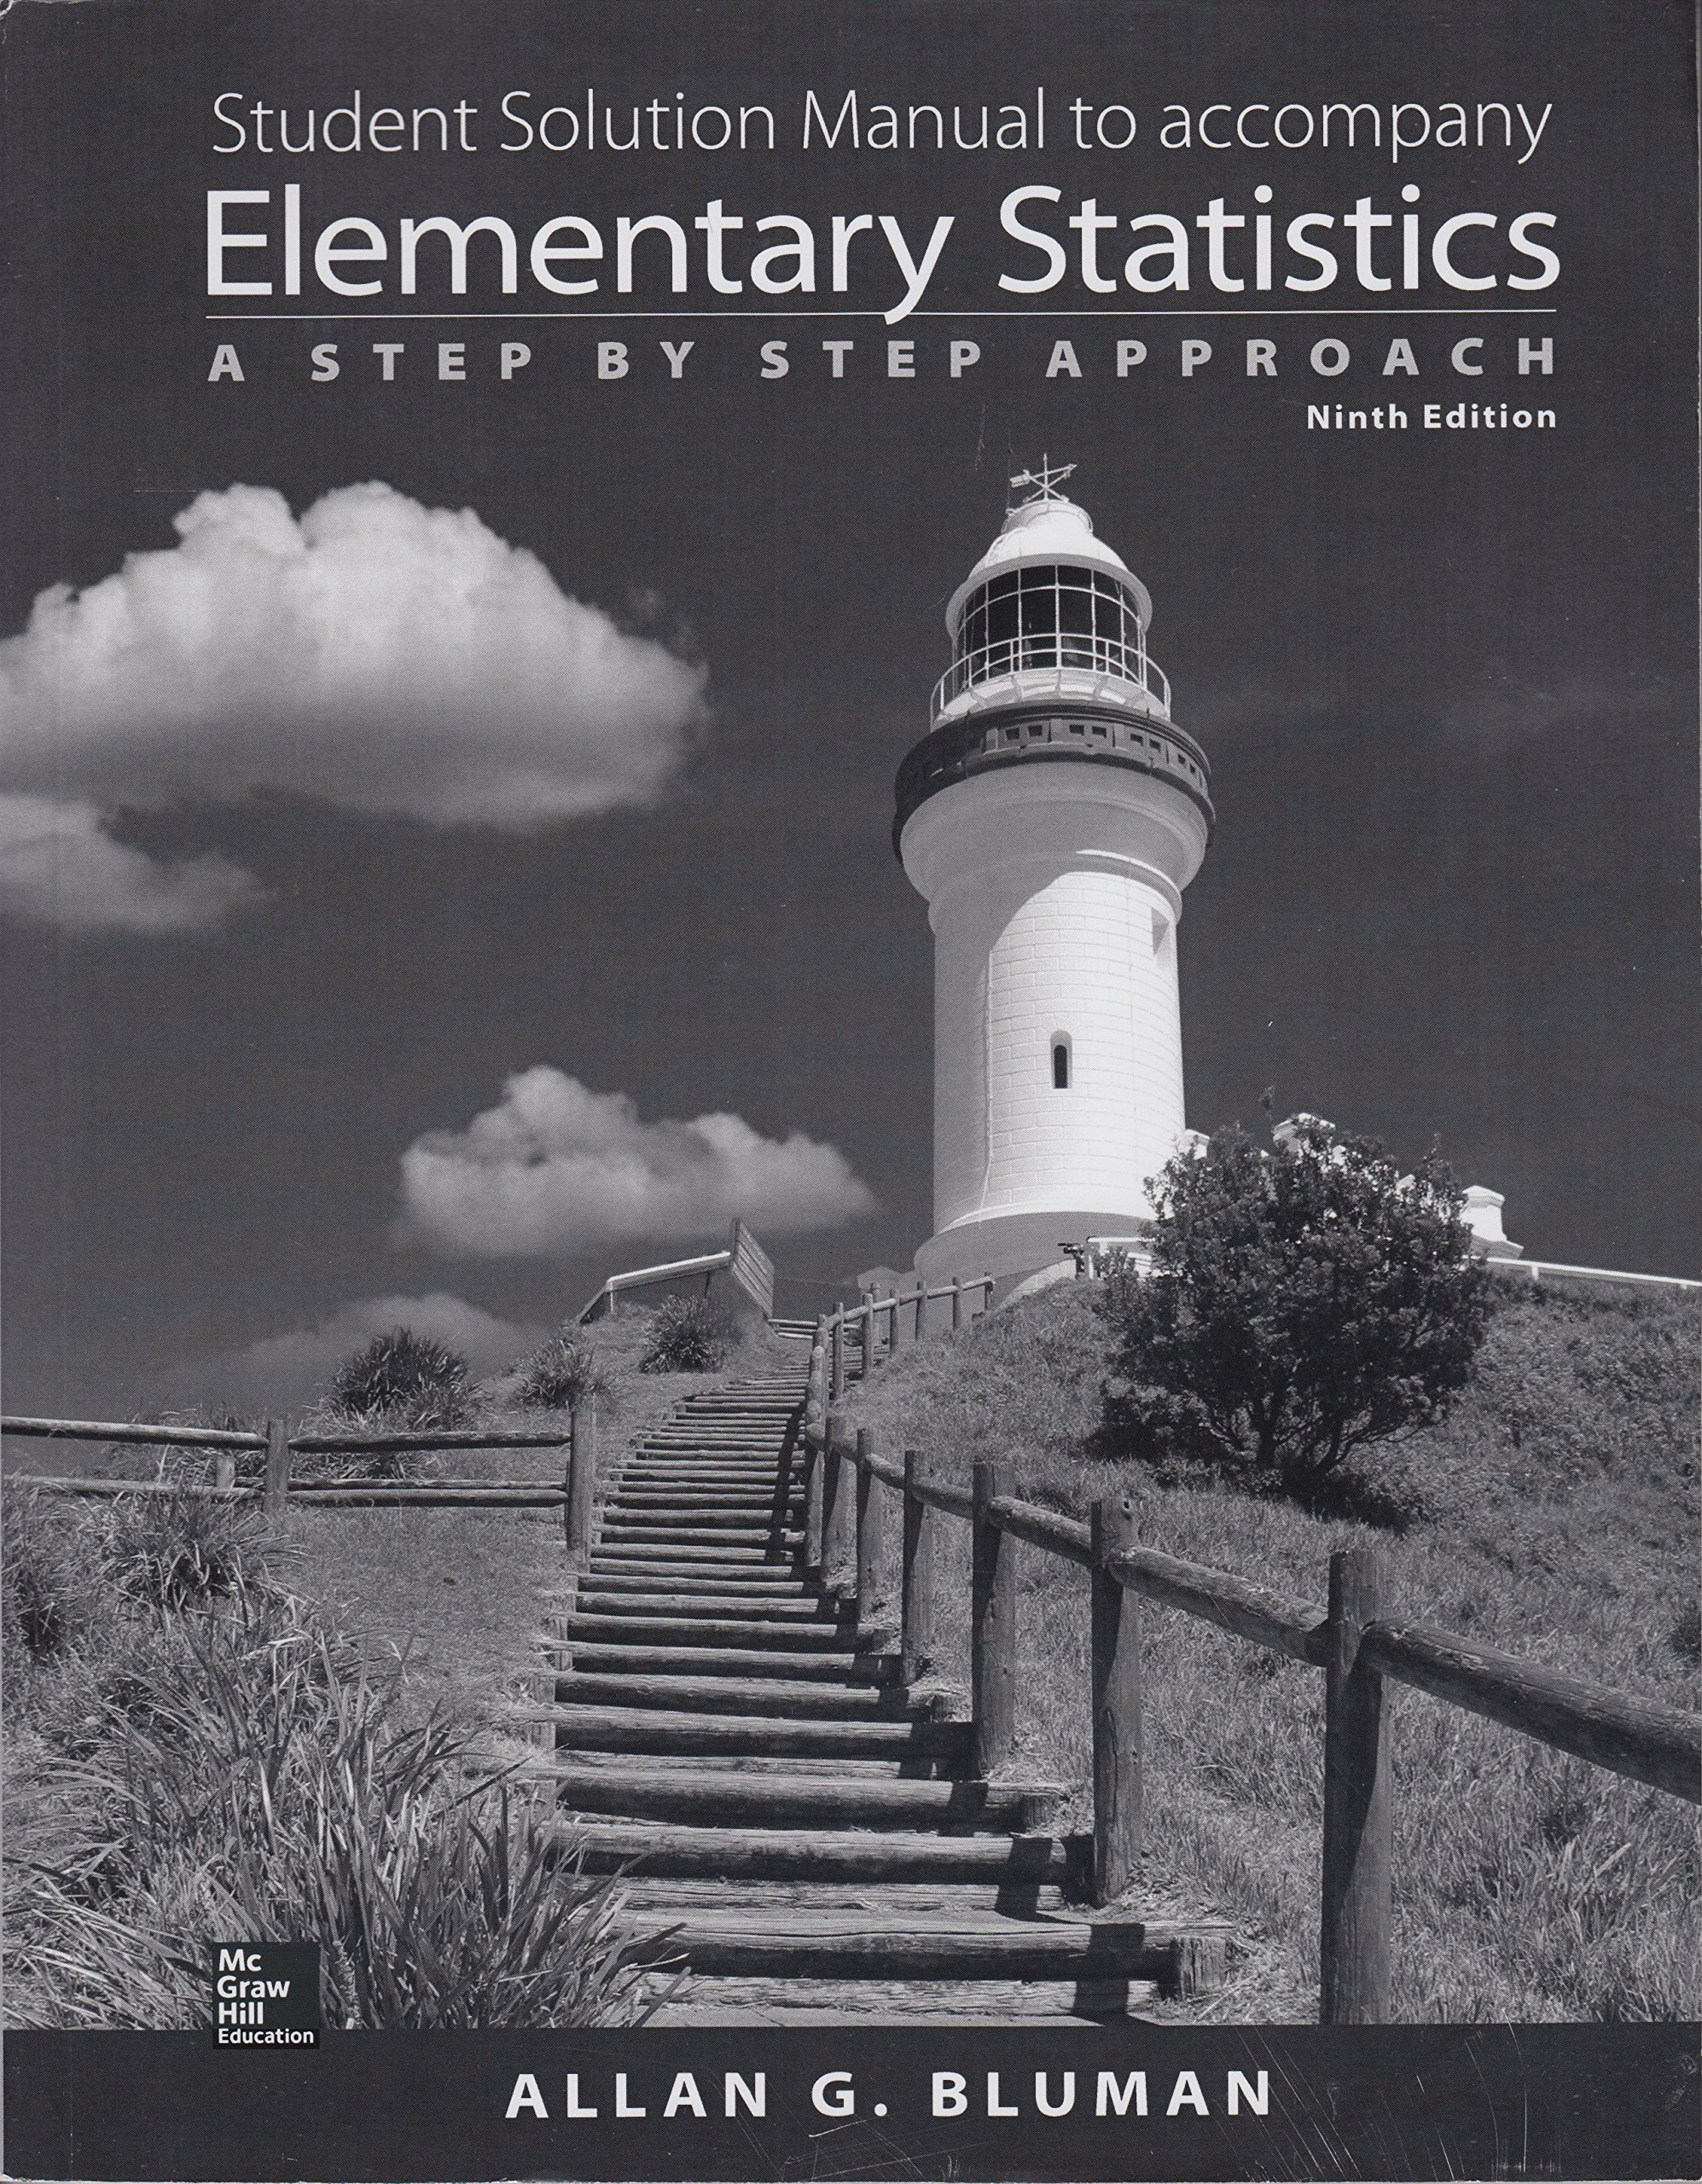 Student Solution Manual to Accompany Elementary Statistics a Step By Step  Approach 9th Edition: Allan G. Bluman: 9780021418169: Amazon.com: Books